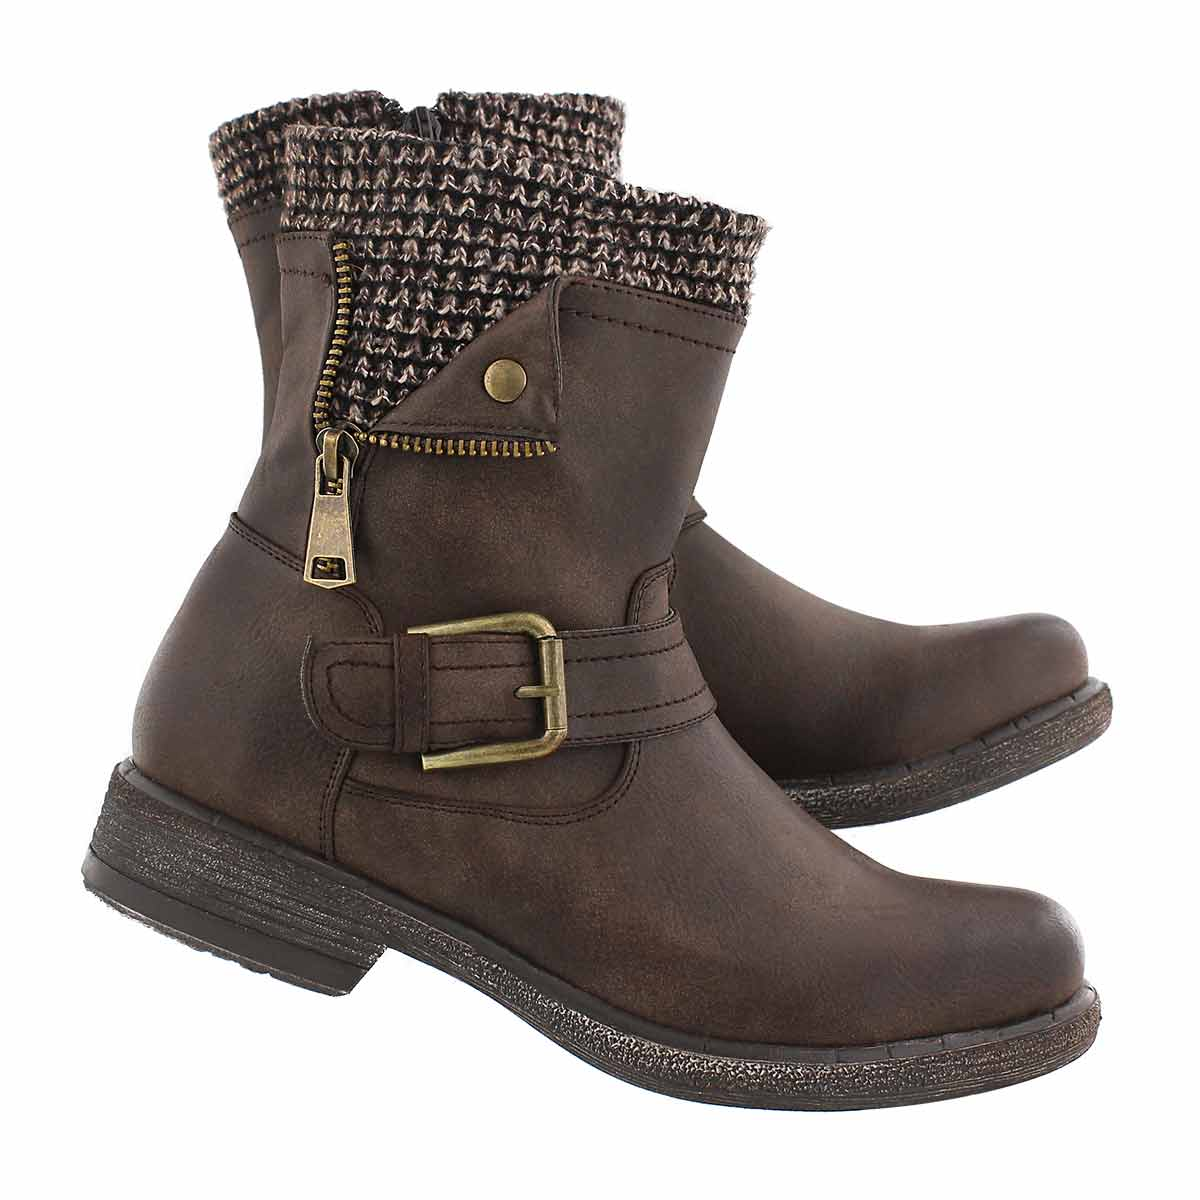 Lds Sasha brown side zip combat boot